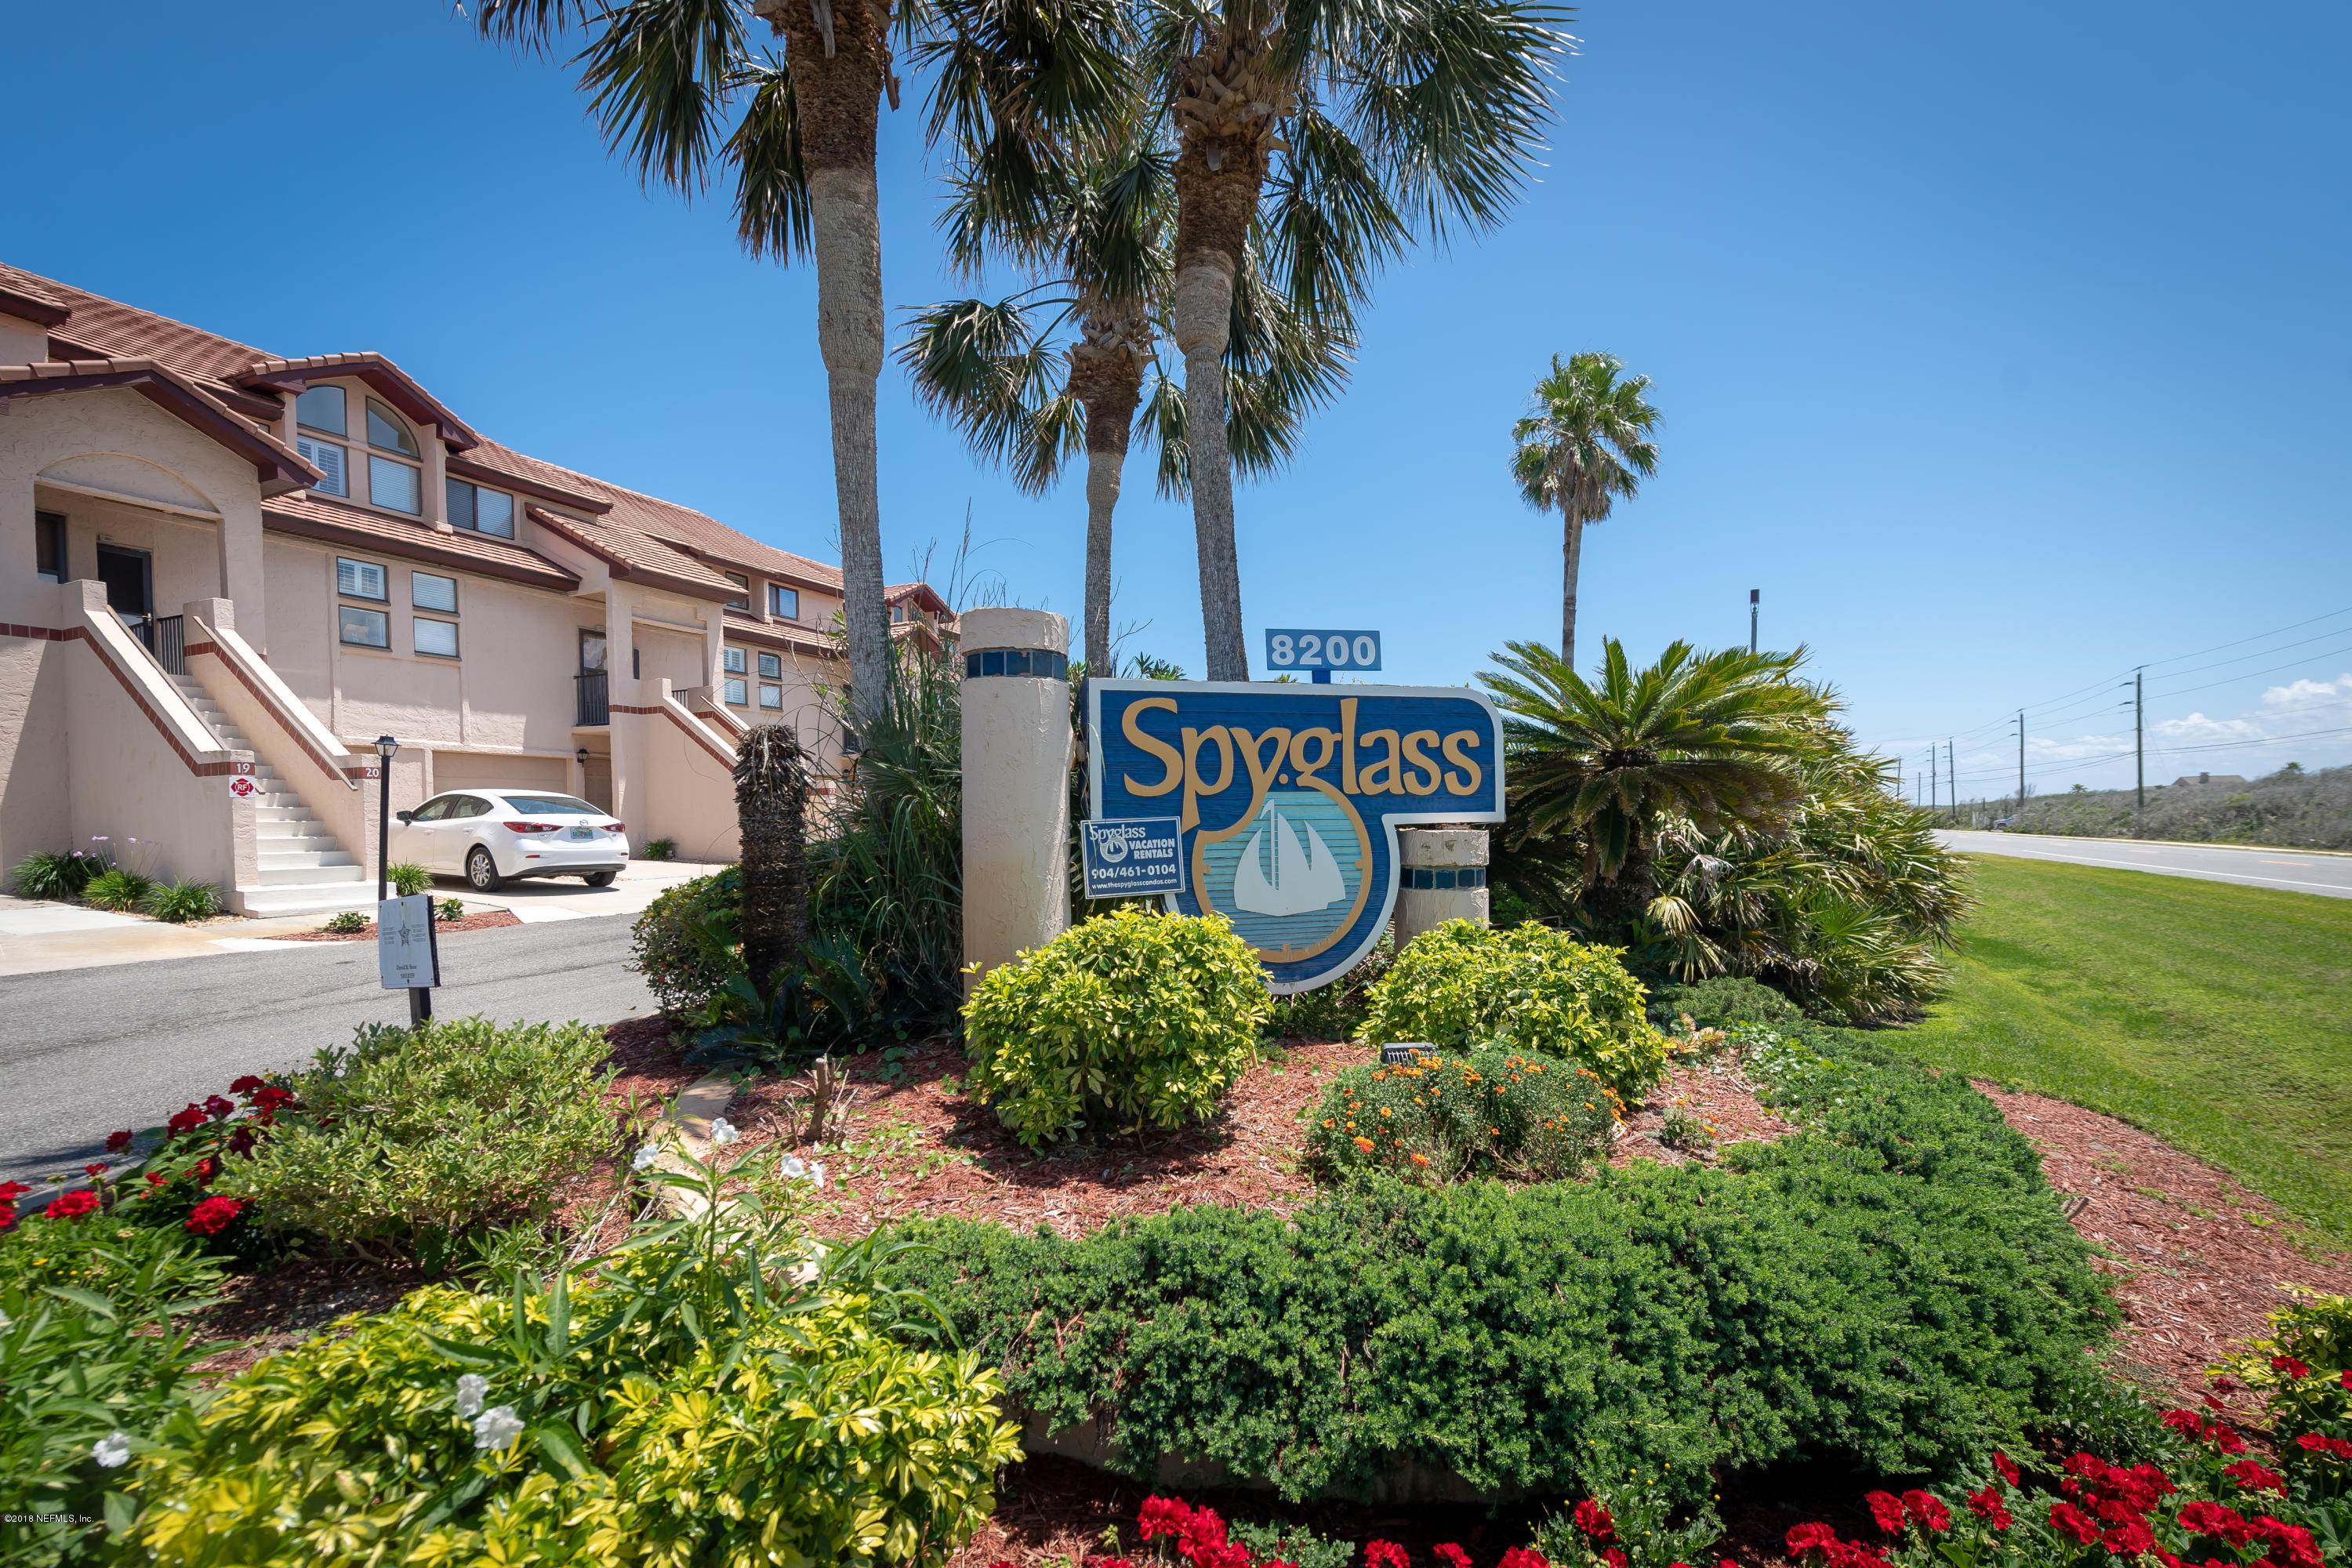 8200 A1A, ST AUGUSTINE, FLORIDA 32080, 2 Bedrooms Bedrooms, ,2 BathroomsBathrooms,Residential - condos/townhomes,For sale,A1A,964971